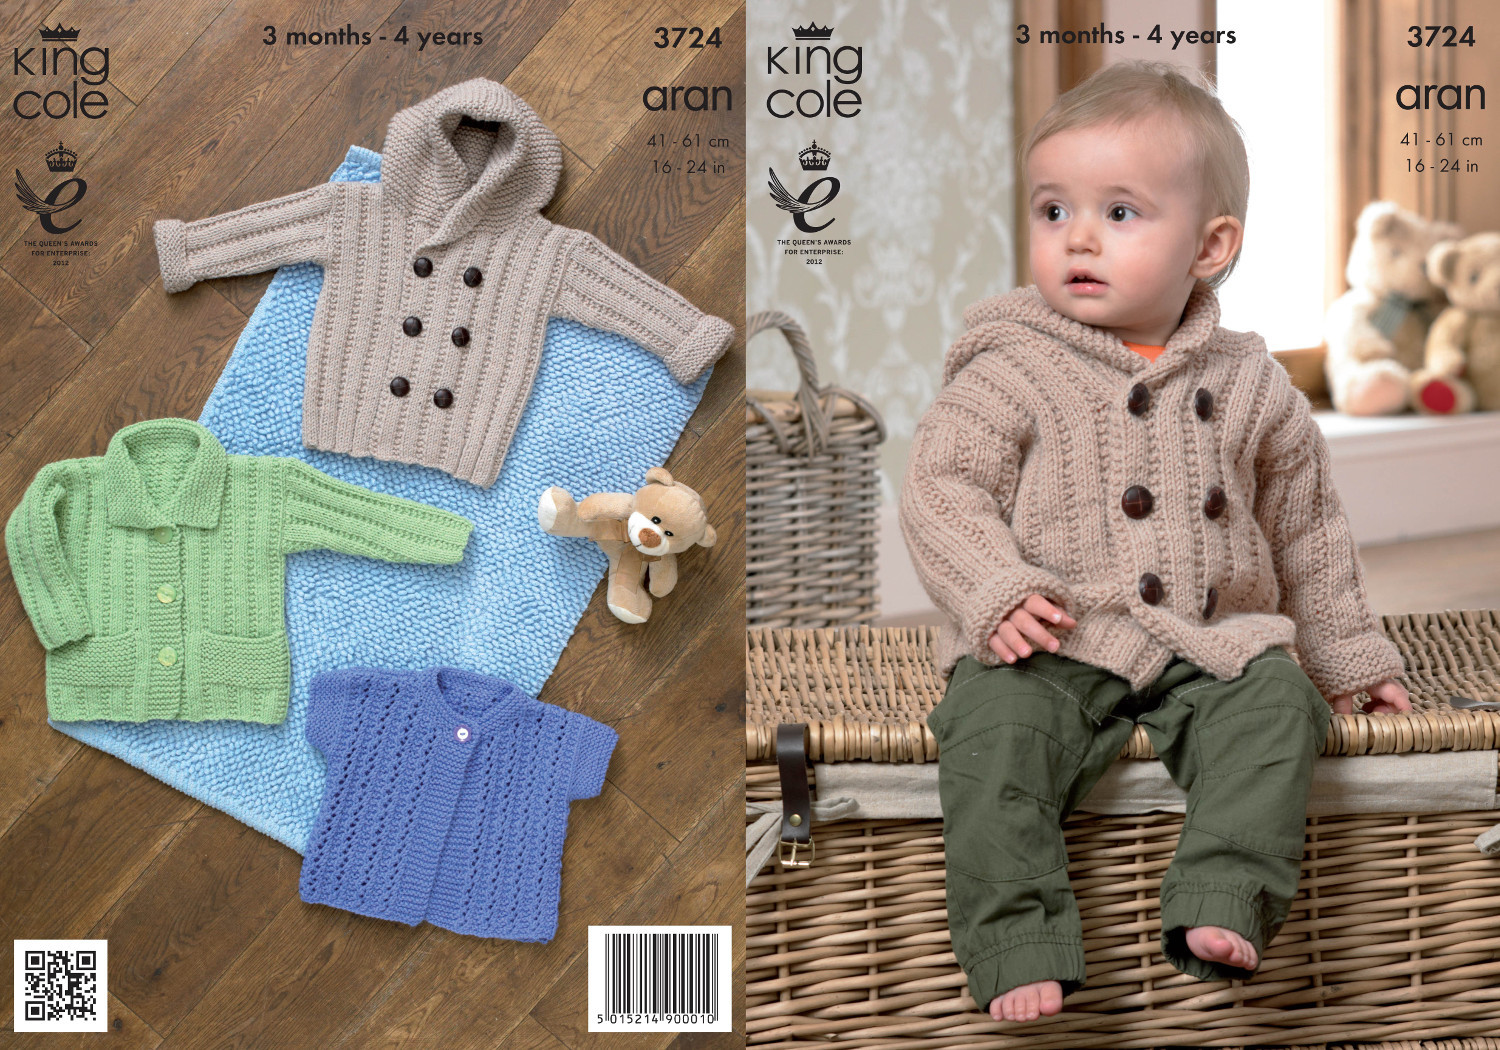 Knitting Patterns For Baby Jacket With Hood : Kids Aran Knitting Pattern Baby Hooded Coat Jacket Lacy Cardigan King Cole 37...